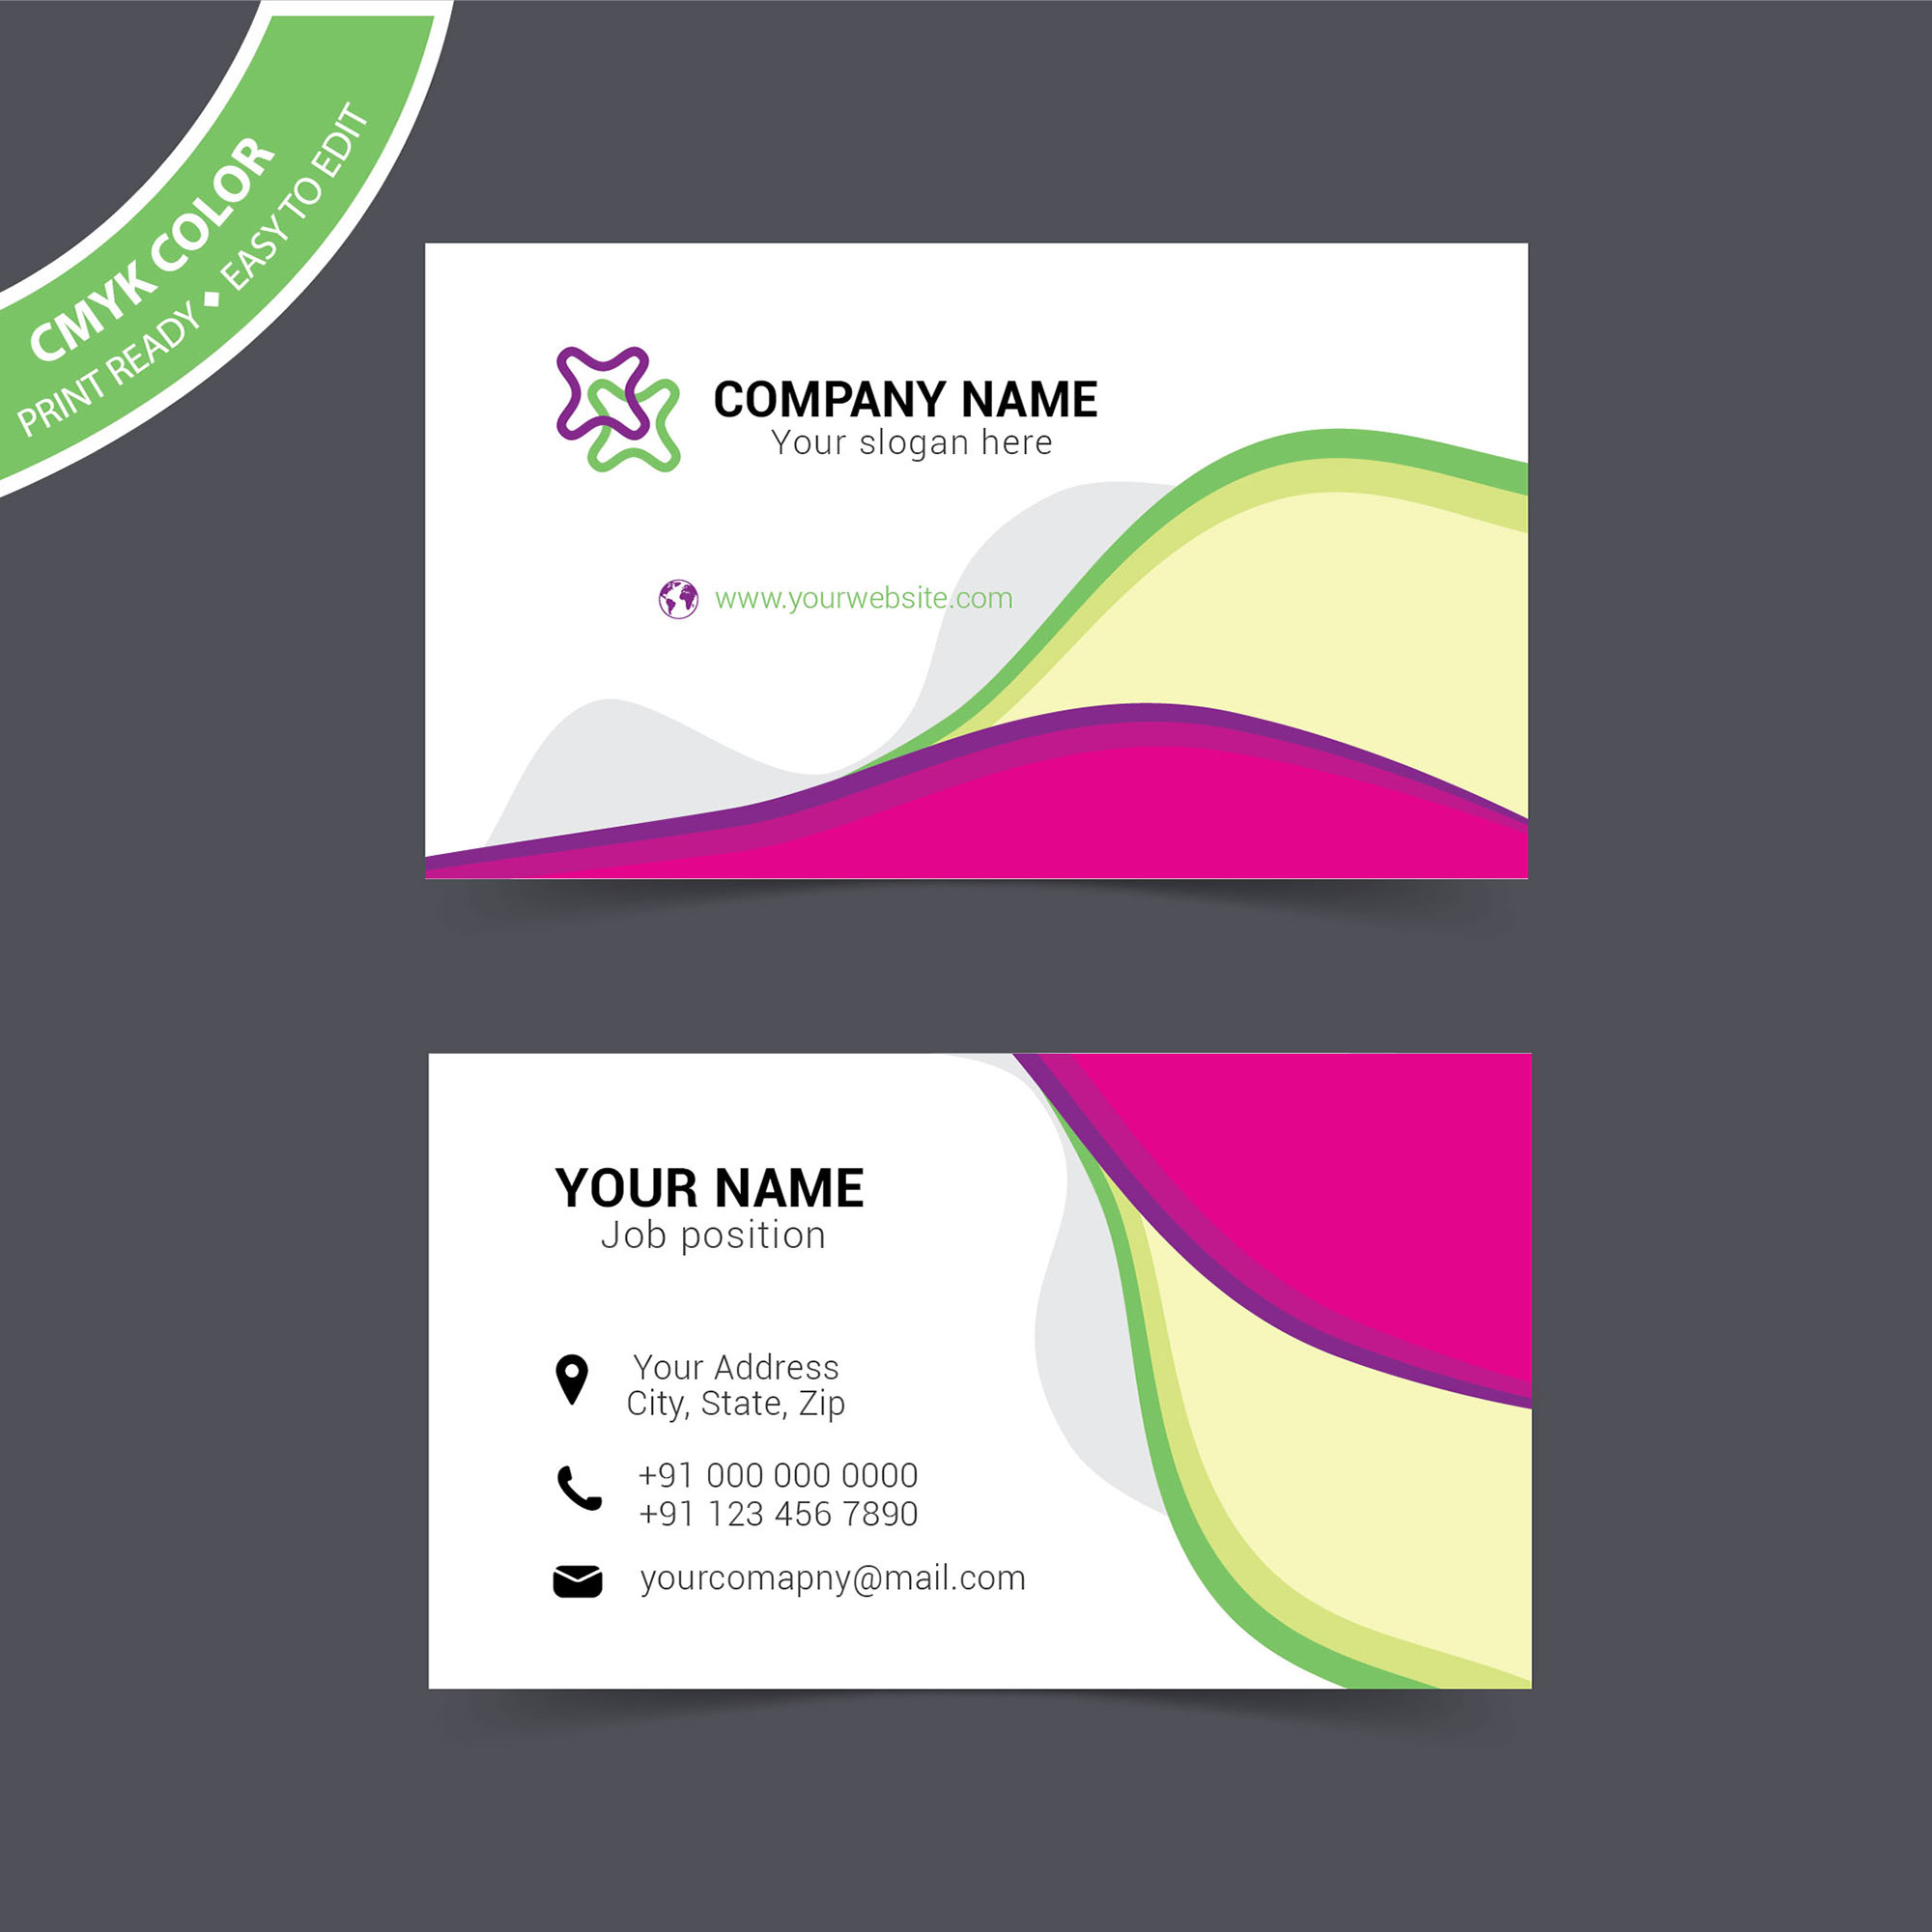 Visiting card design sample free download wisxi business card business cards business card design business card template design templates fbccfo Images